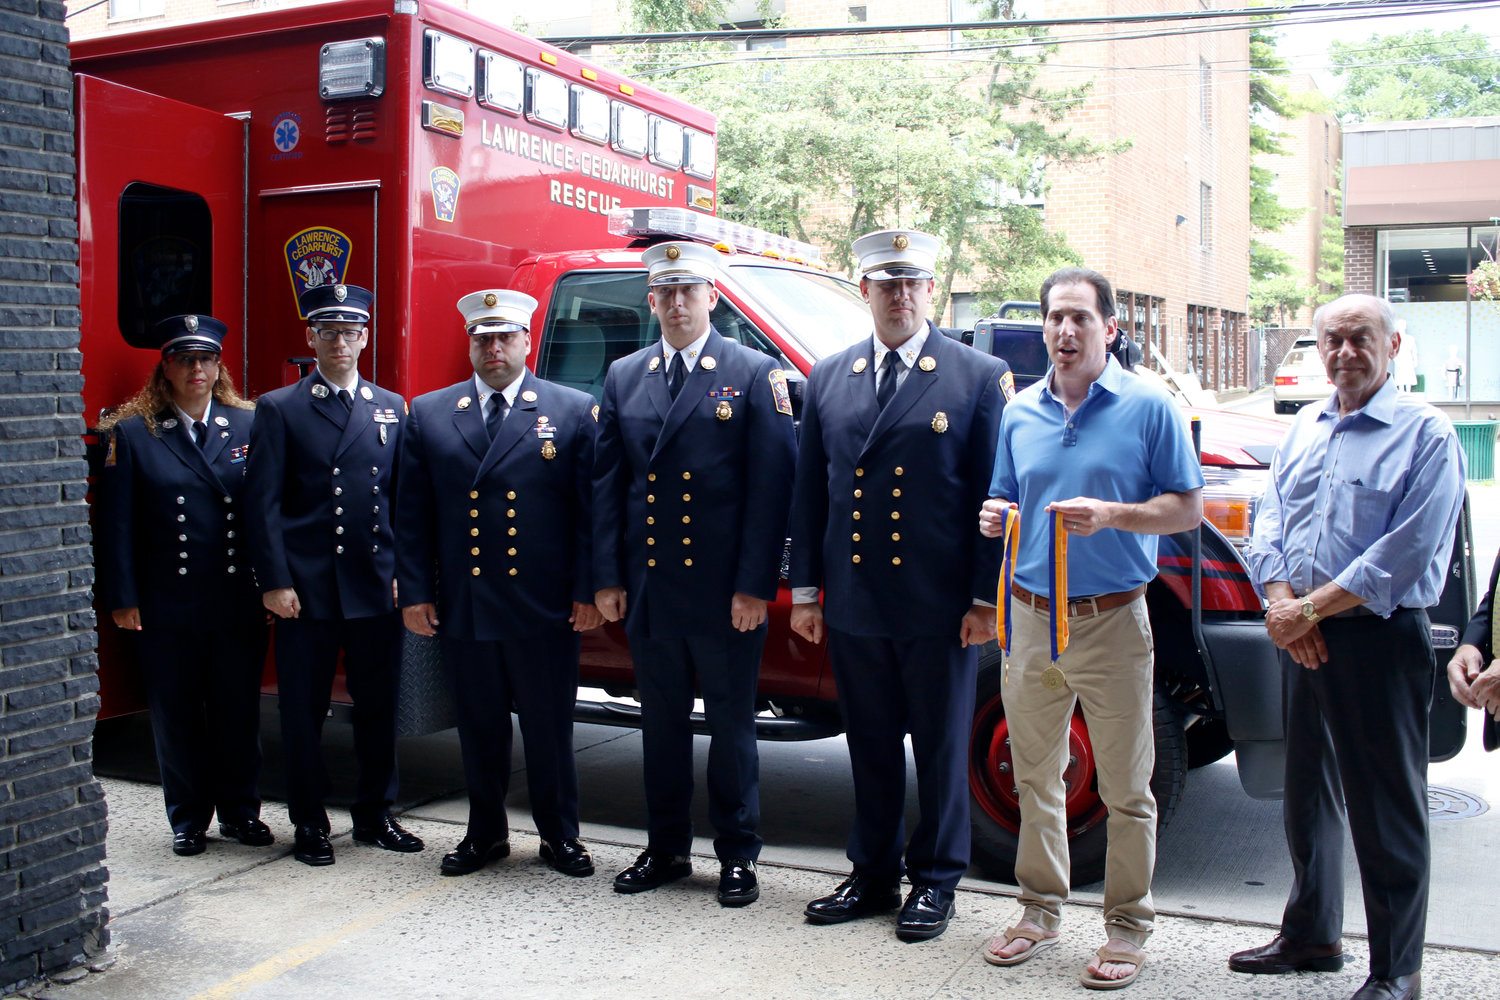 The Lawrence-Cedarhurst Fire Department had two members receive Liberty Medals. From left, recipient Shoshana Weiner, recipient Meyer Adler, 2nd Deputy Chief Michael Beilinson, 1st Deputy Chief Thomas Foy, Chief James McHugh. State Sen. Todd Kaminsky and Village of Lawrence Mayor Alex Edelman.